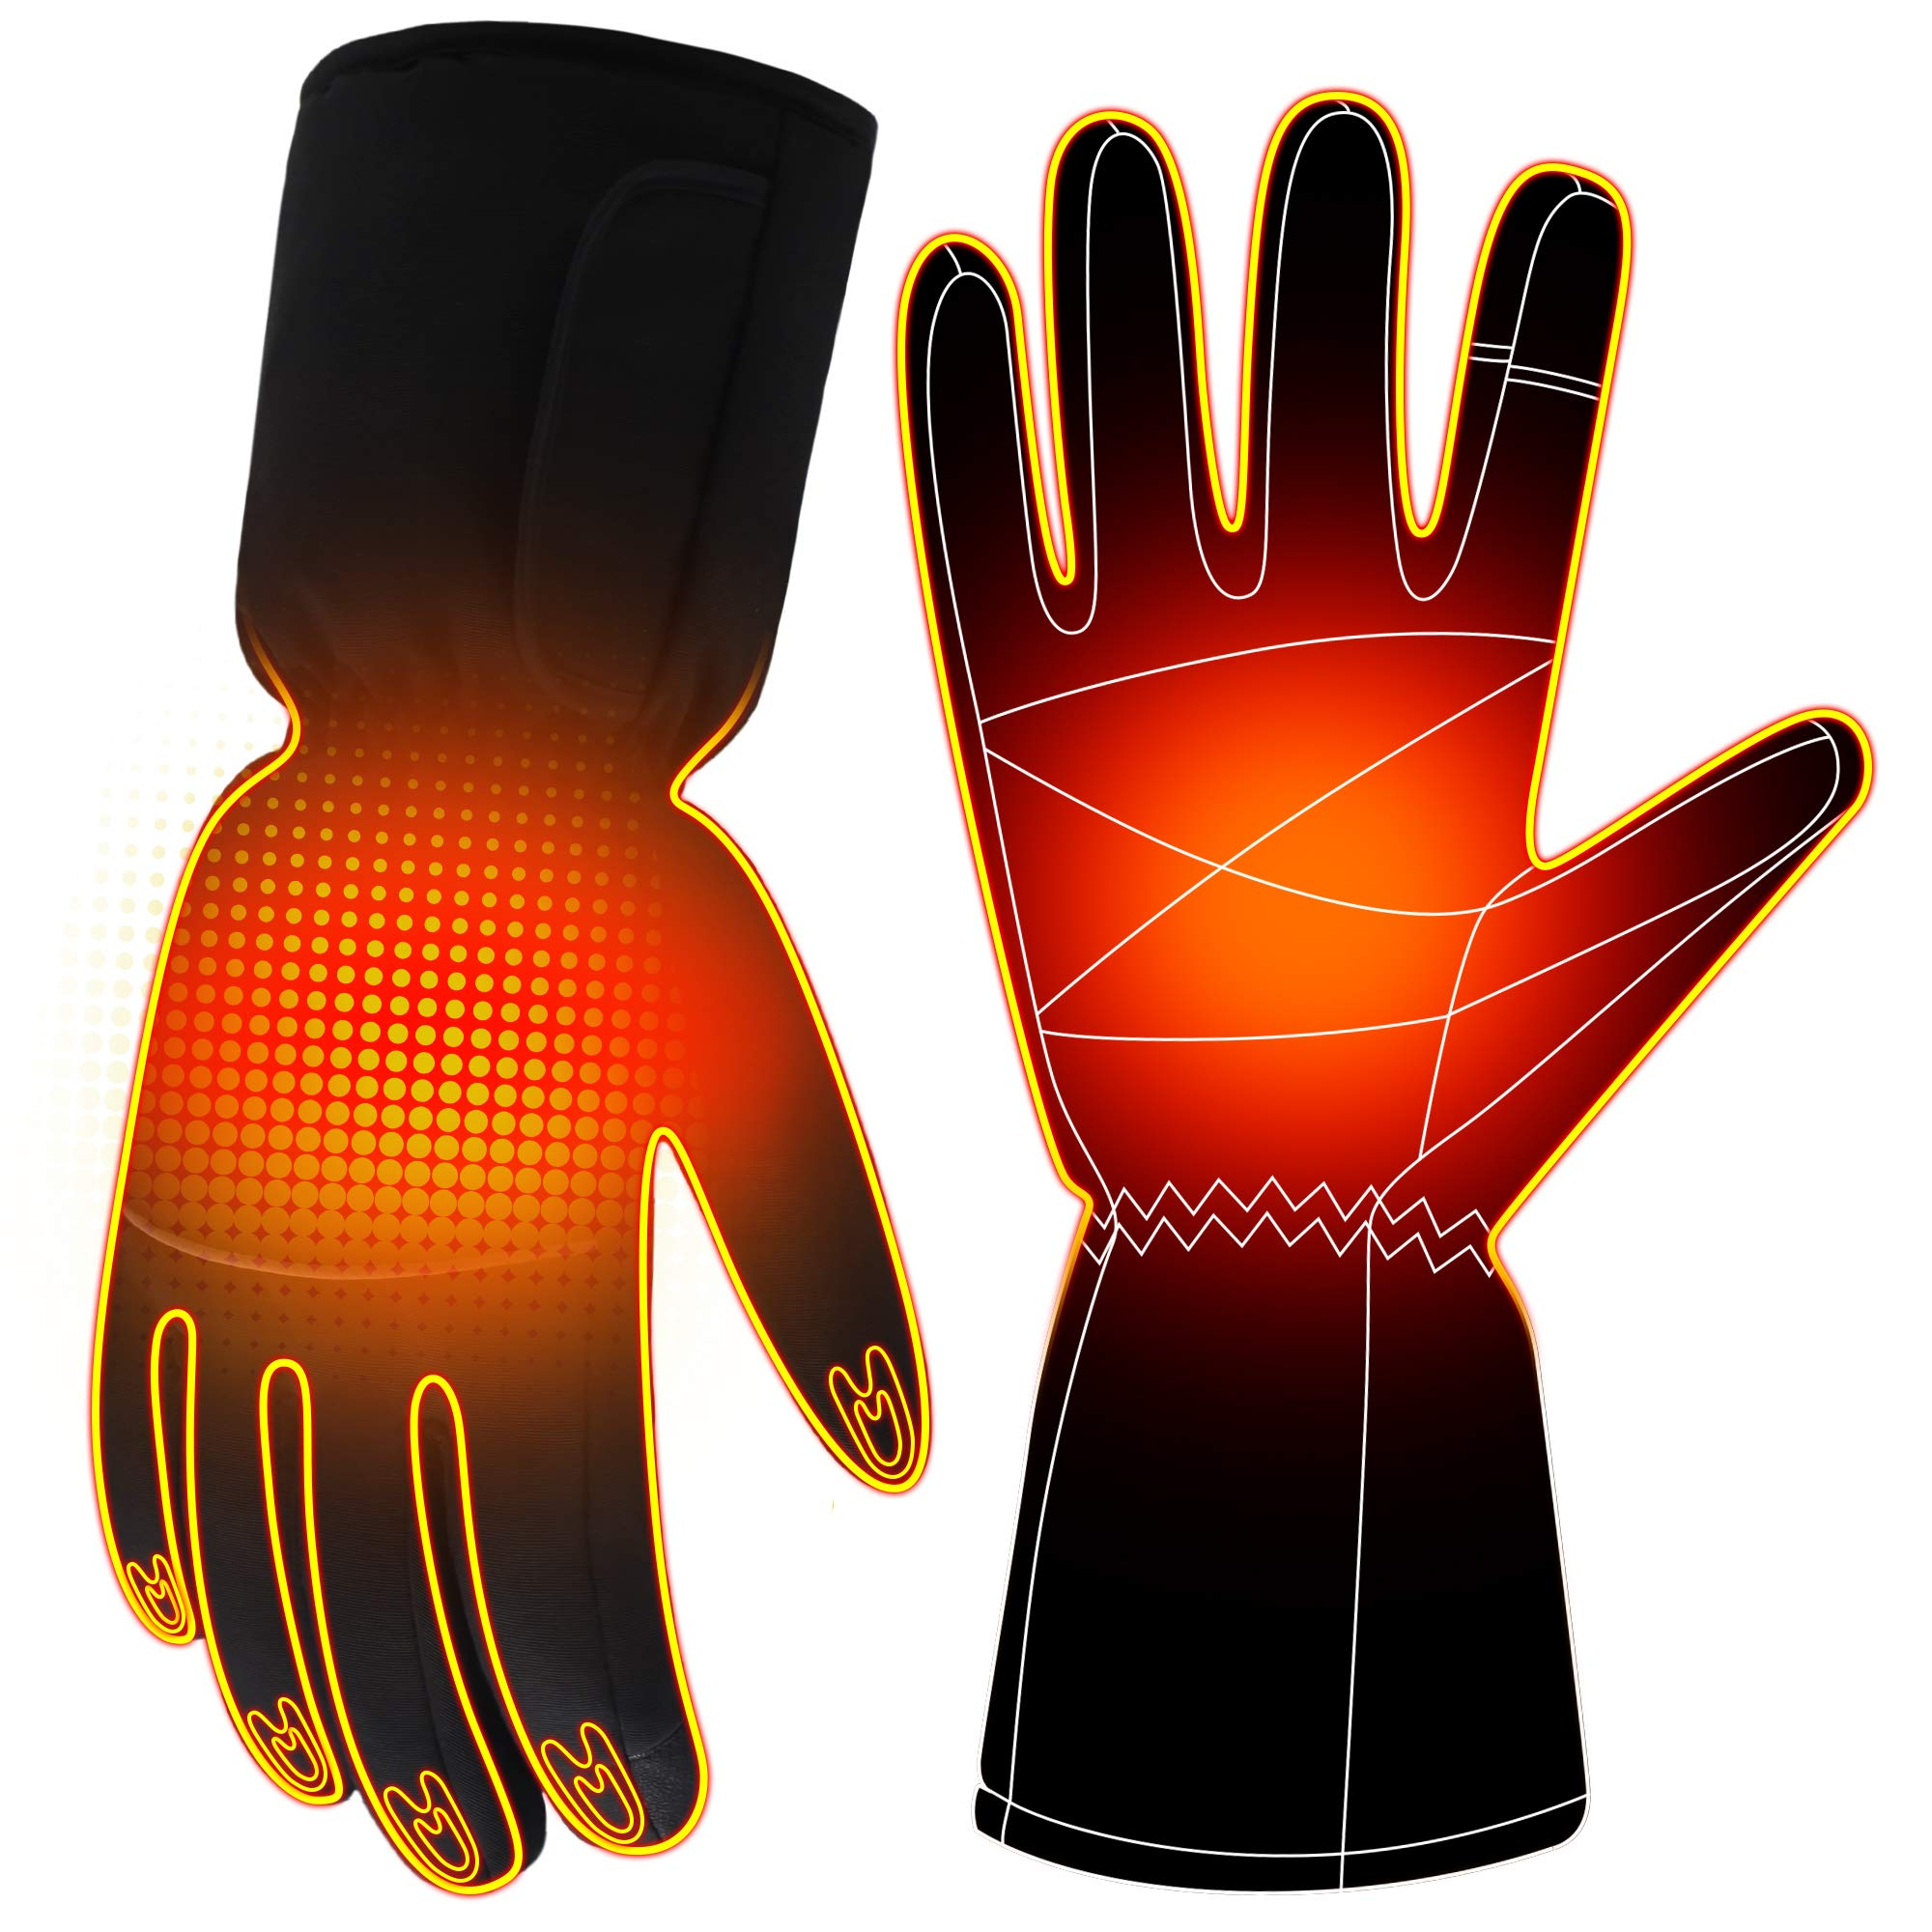 Autocastle Men Women Electric Heated GlovesTouchscreen Heating Gloves,Heat Insulated Thermal Gloves for Climbing Hiking Skiing,3 Heat,Hand Warmer,Black (2200mAh Li-ion Battery) by Autocastle